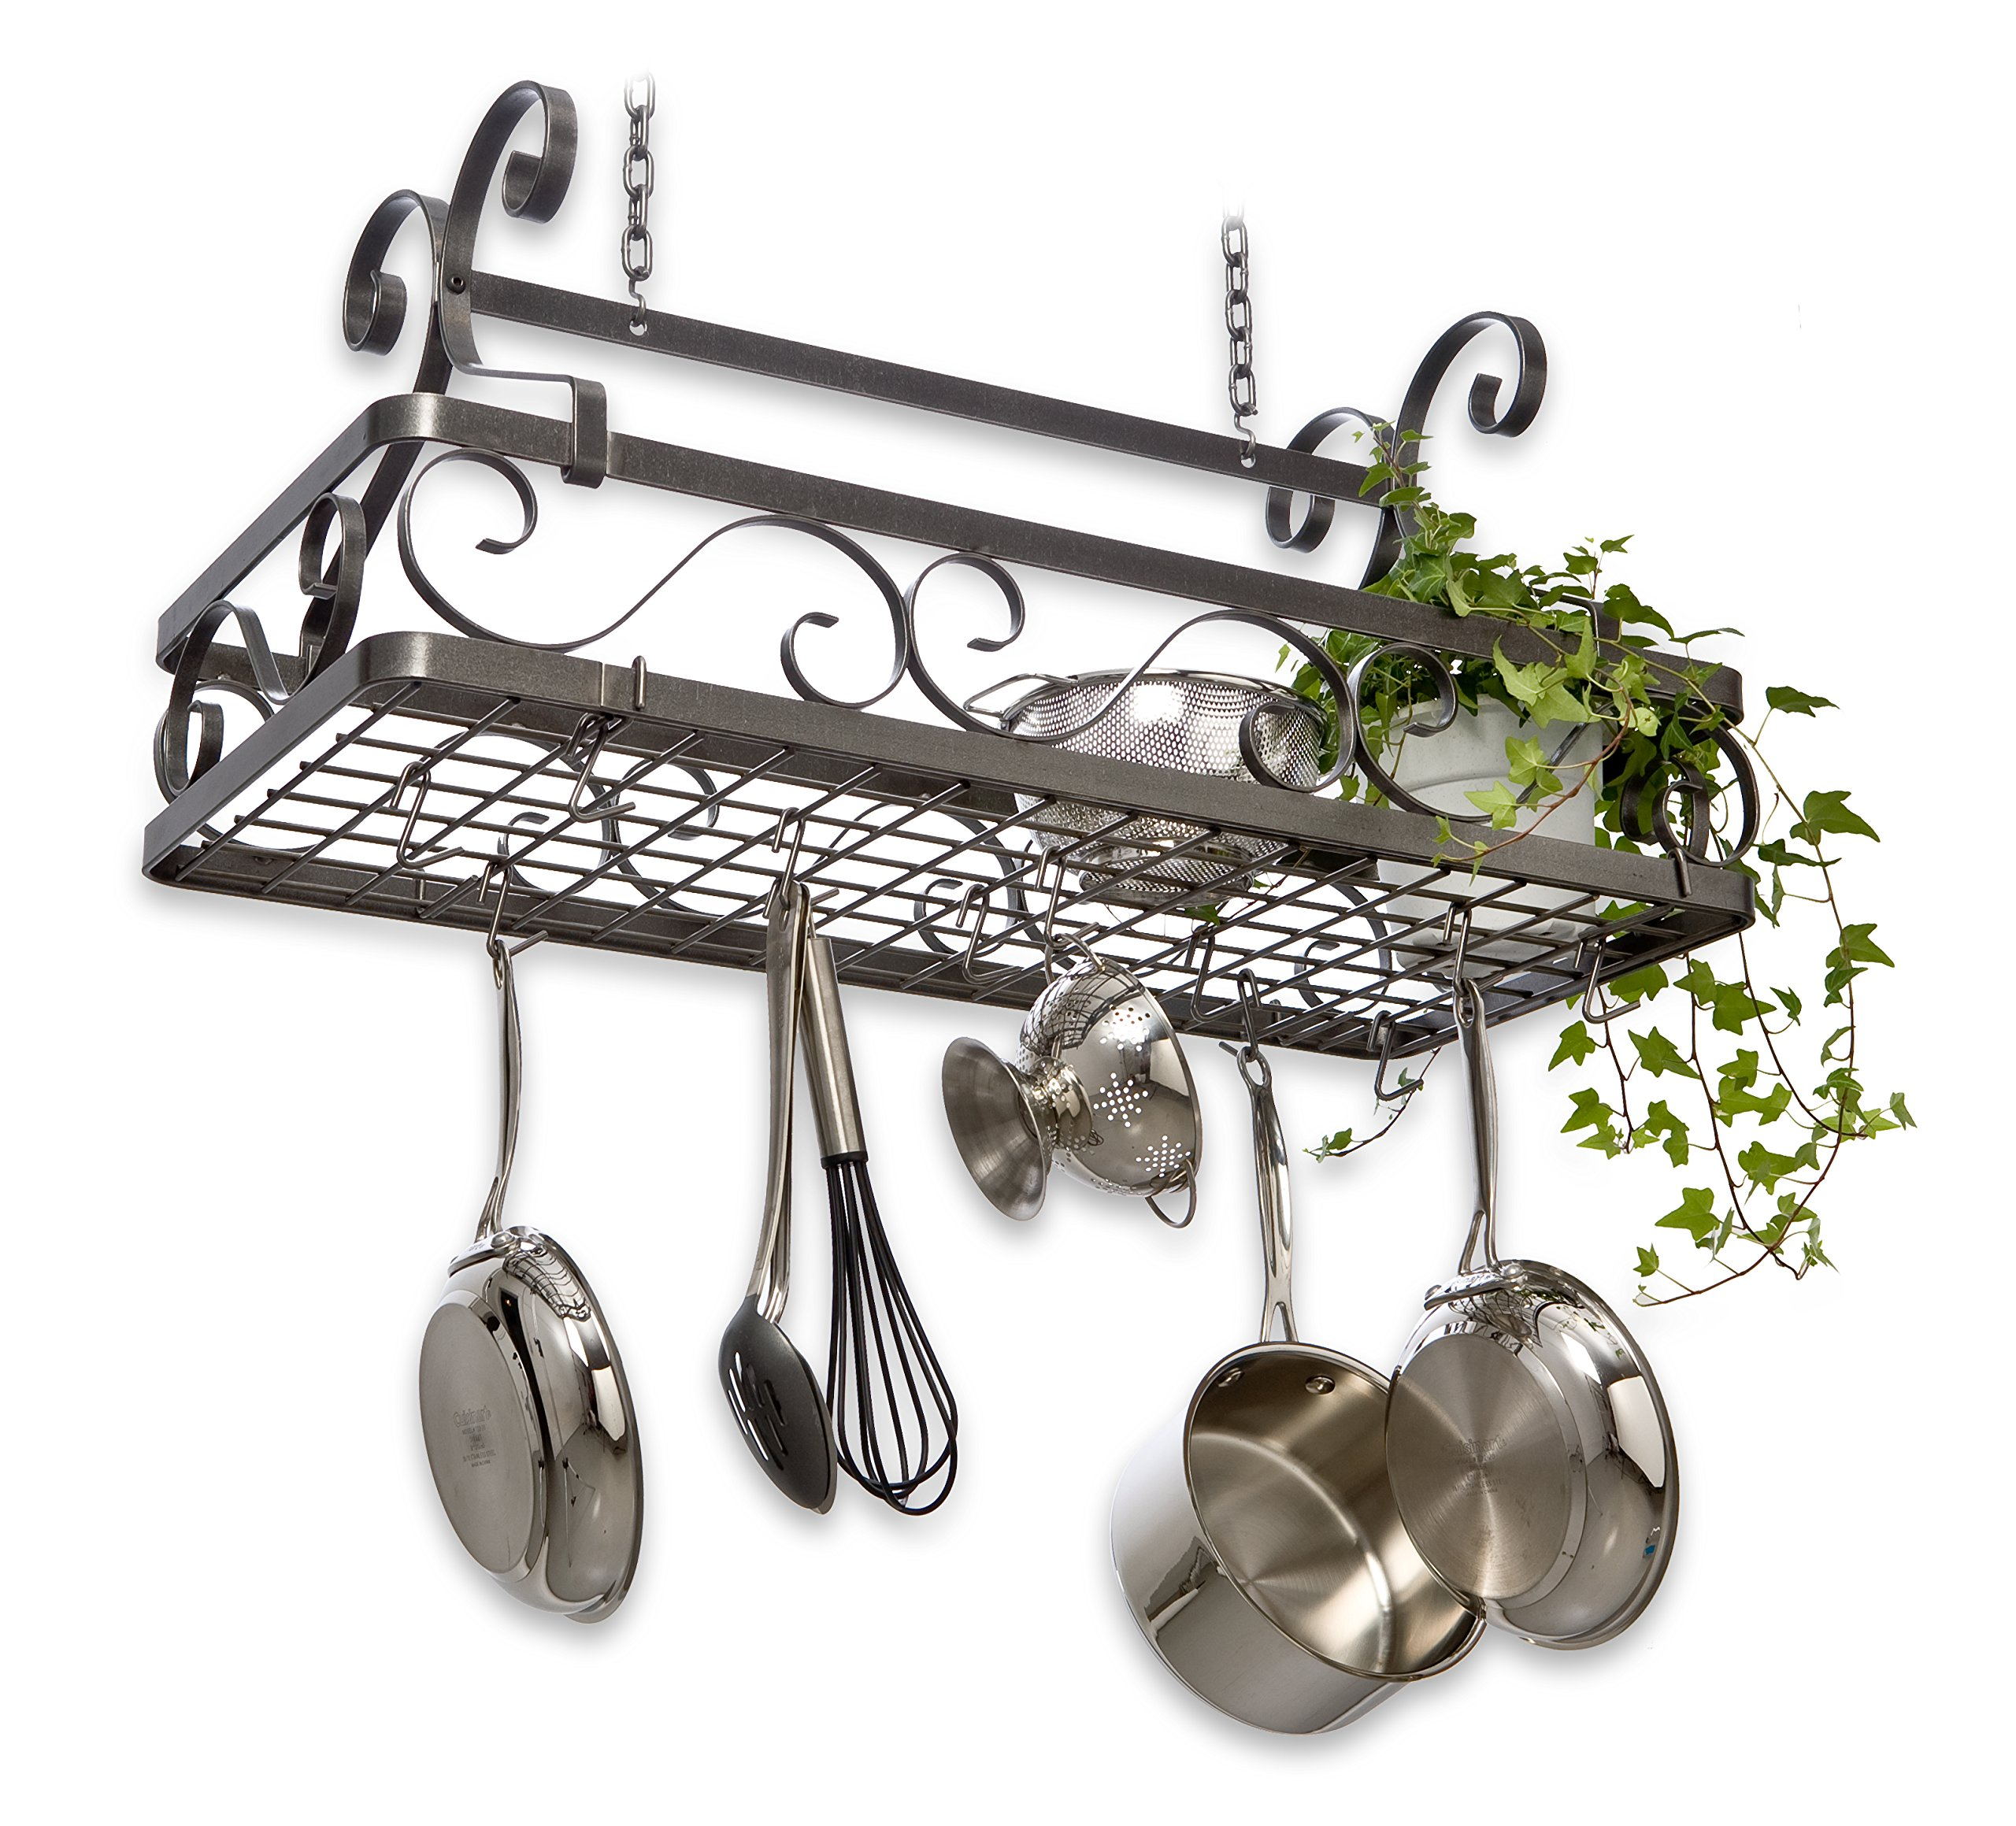 Enclume DR17a HS Decor Basket Rack, Large by Enclume (Image #1)